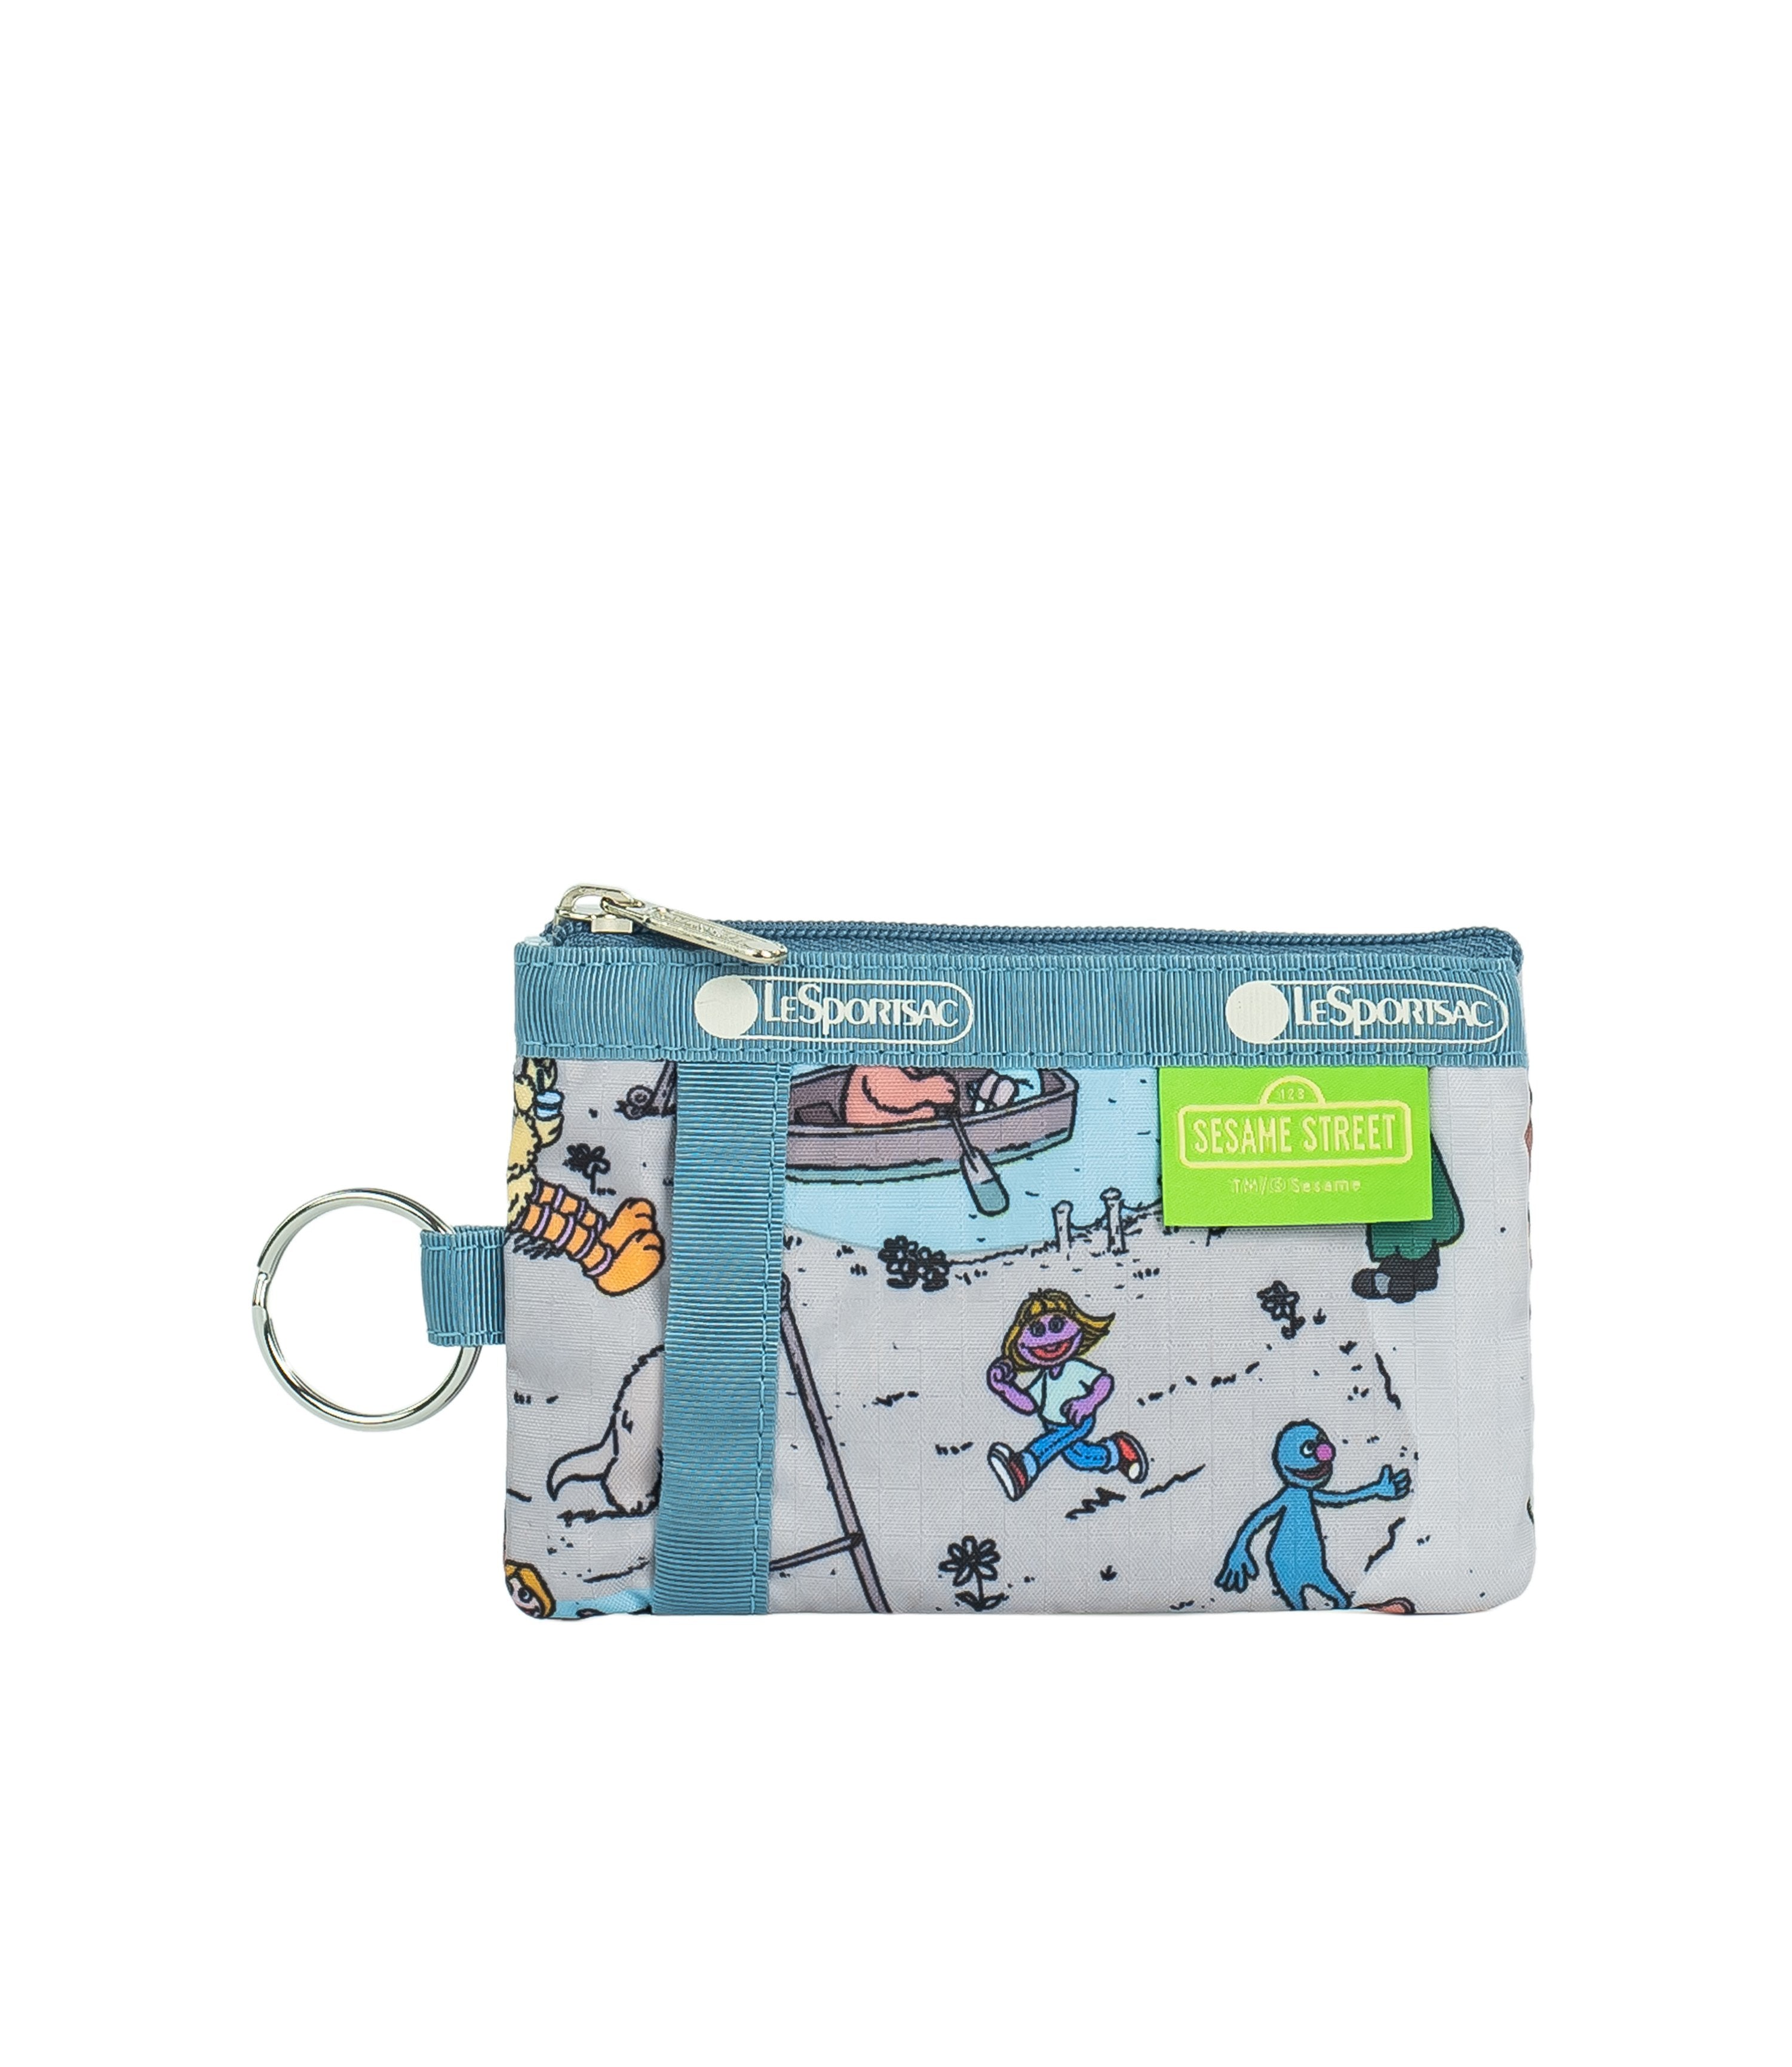 LeSportsac - Accessories - ID Card Case - Sesame Park